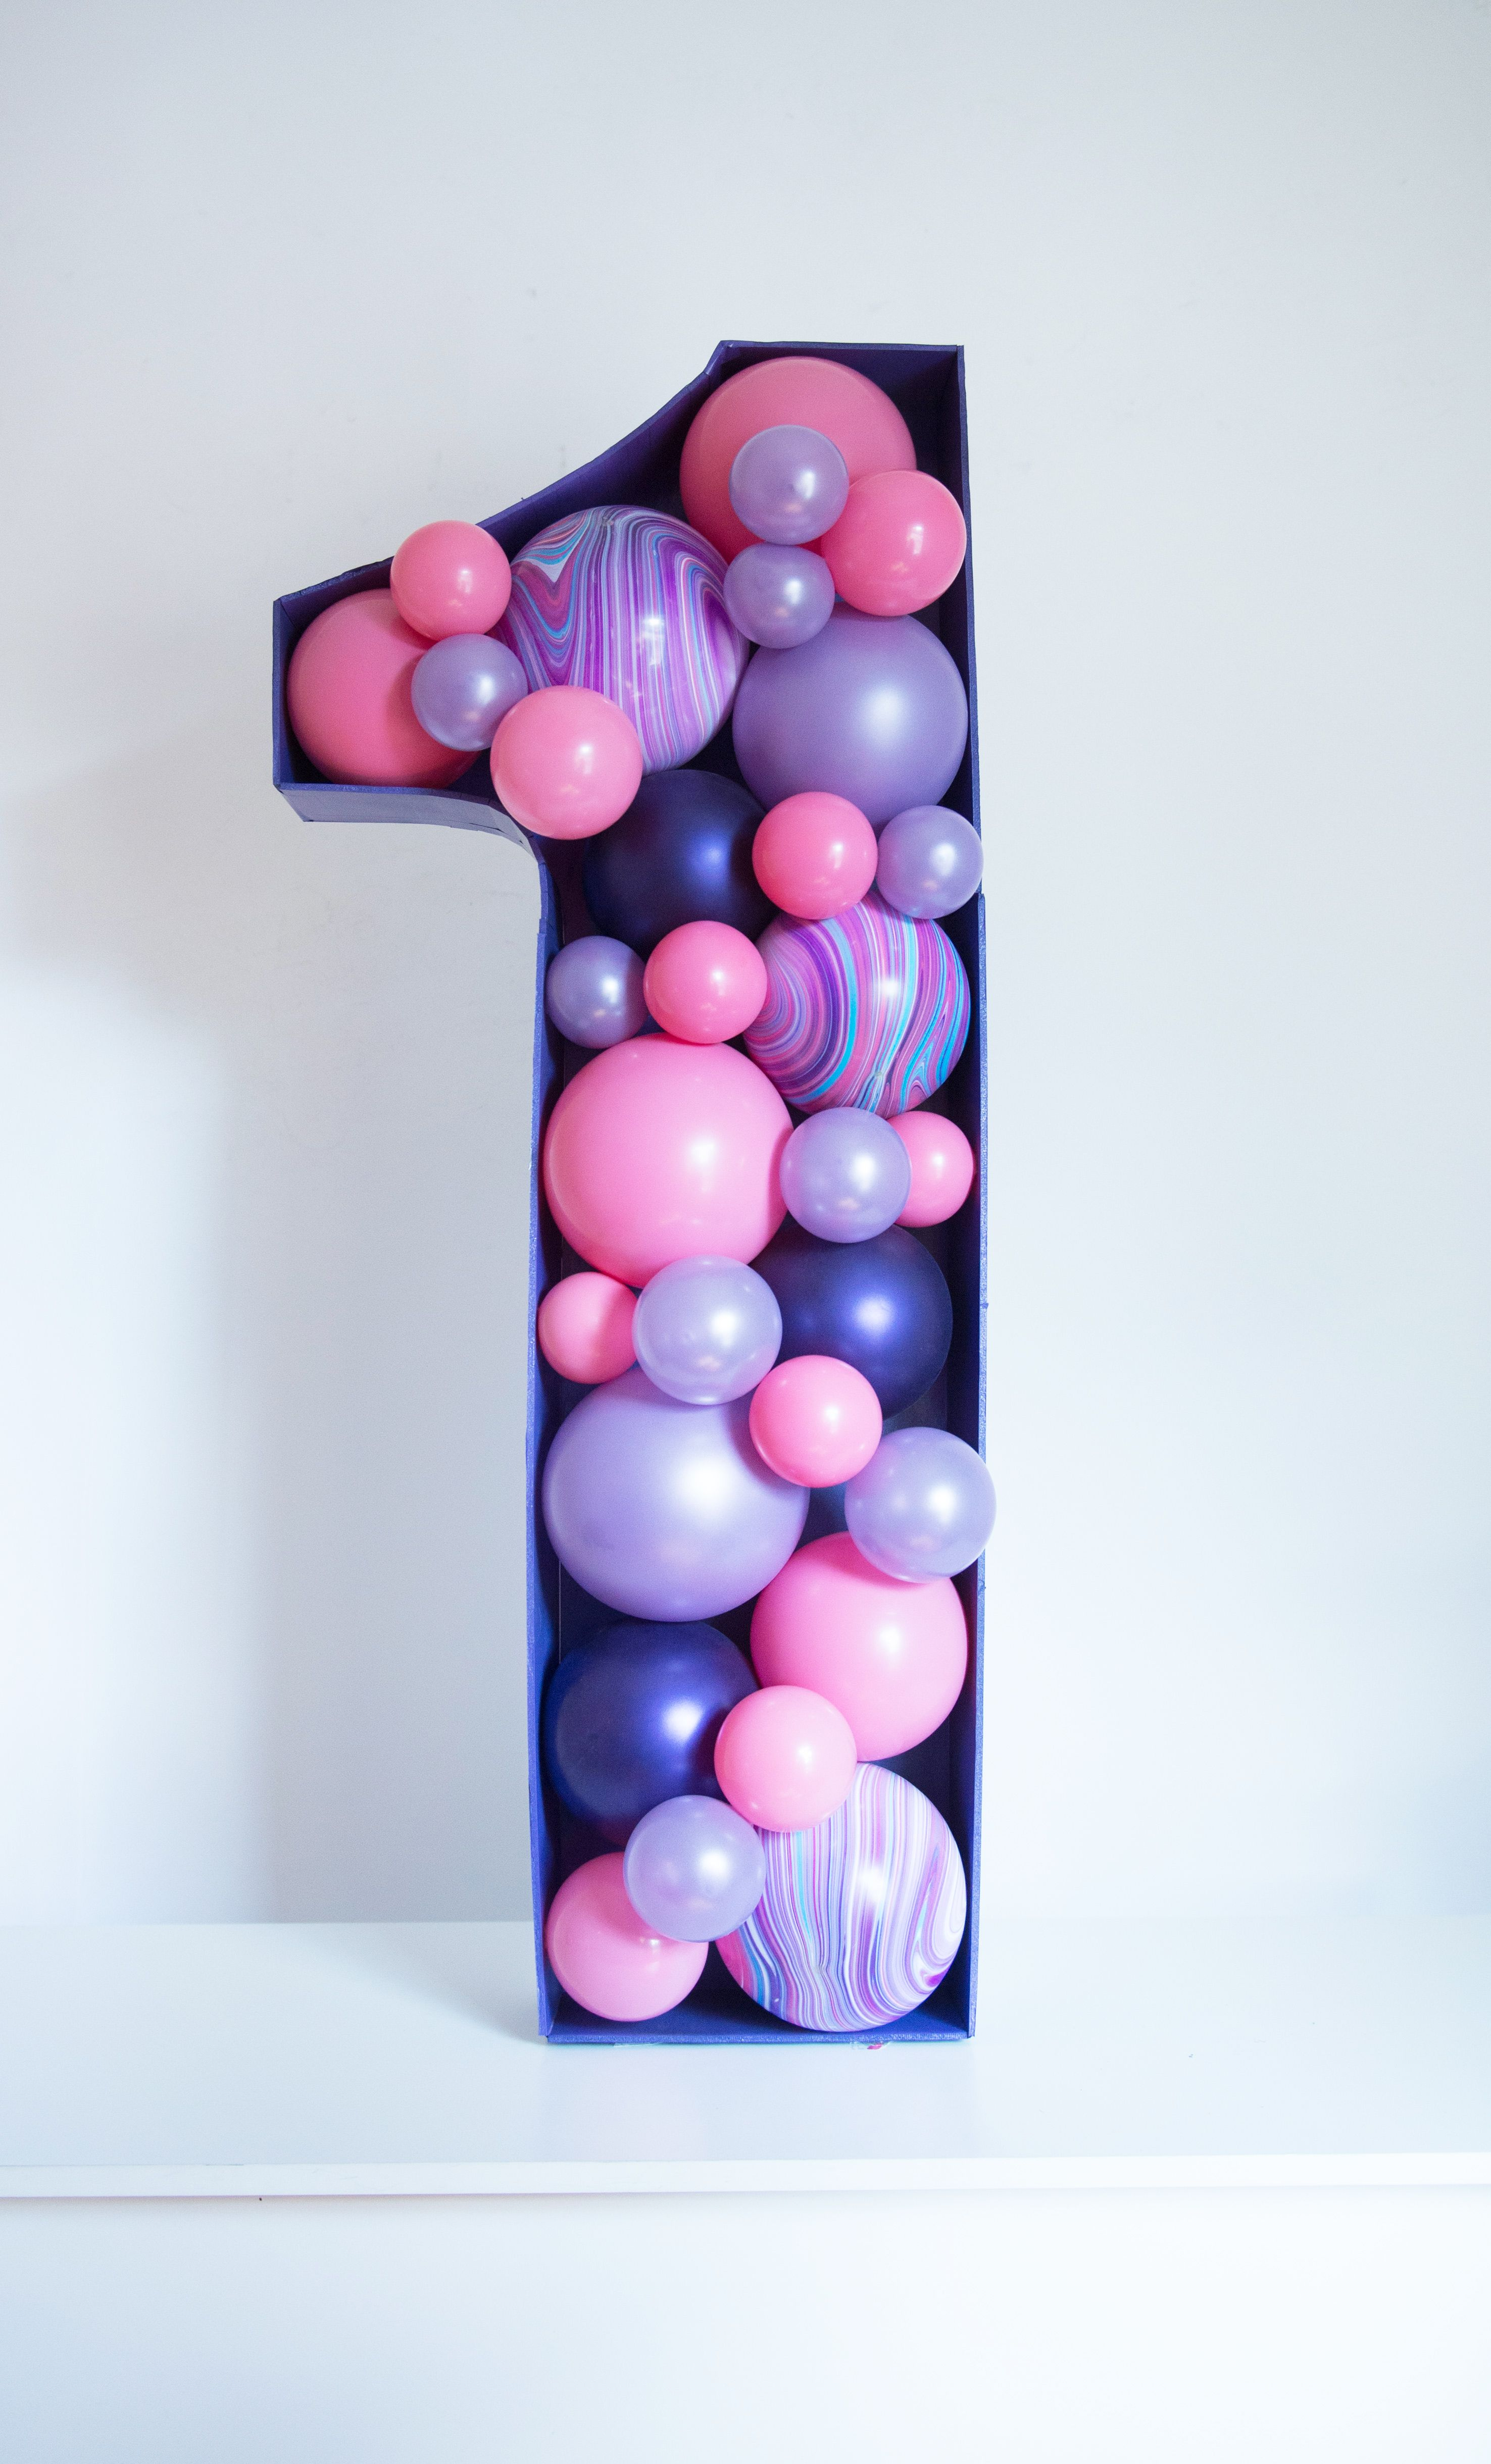 Balloon Numbers in 2020 Birthday balloon decorations